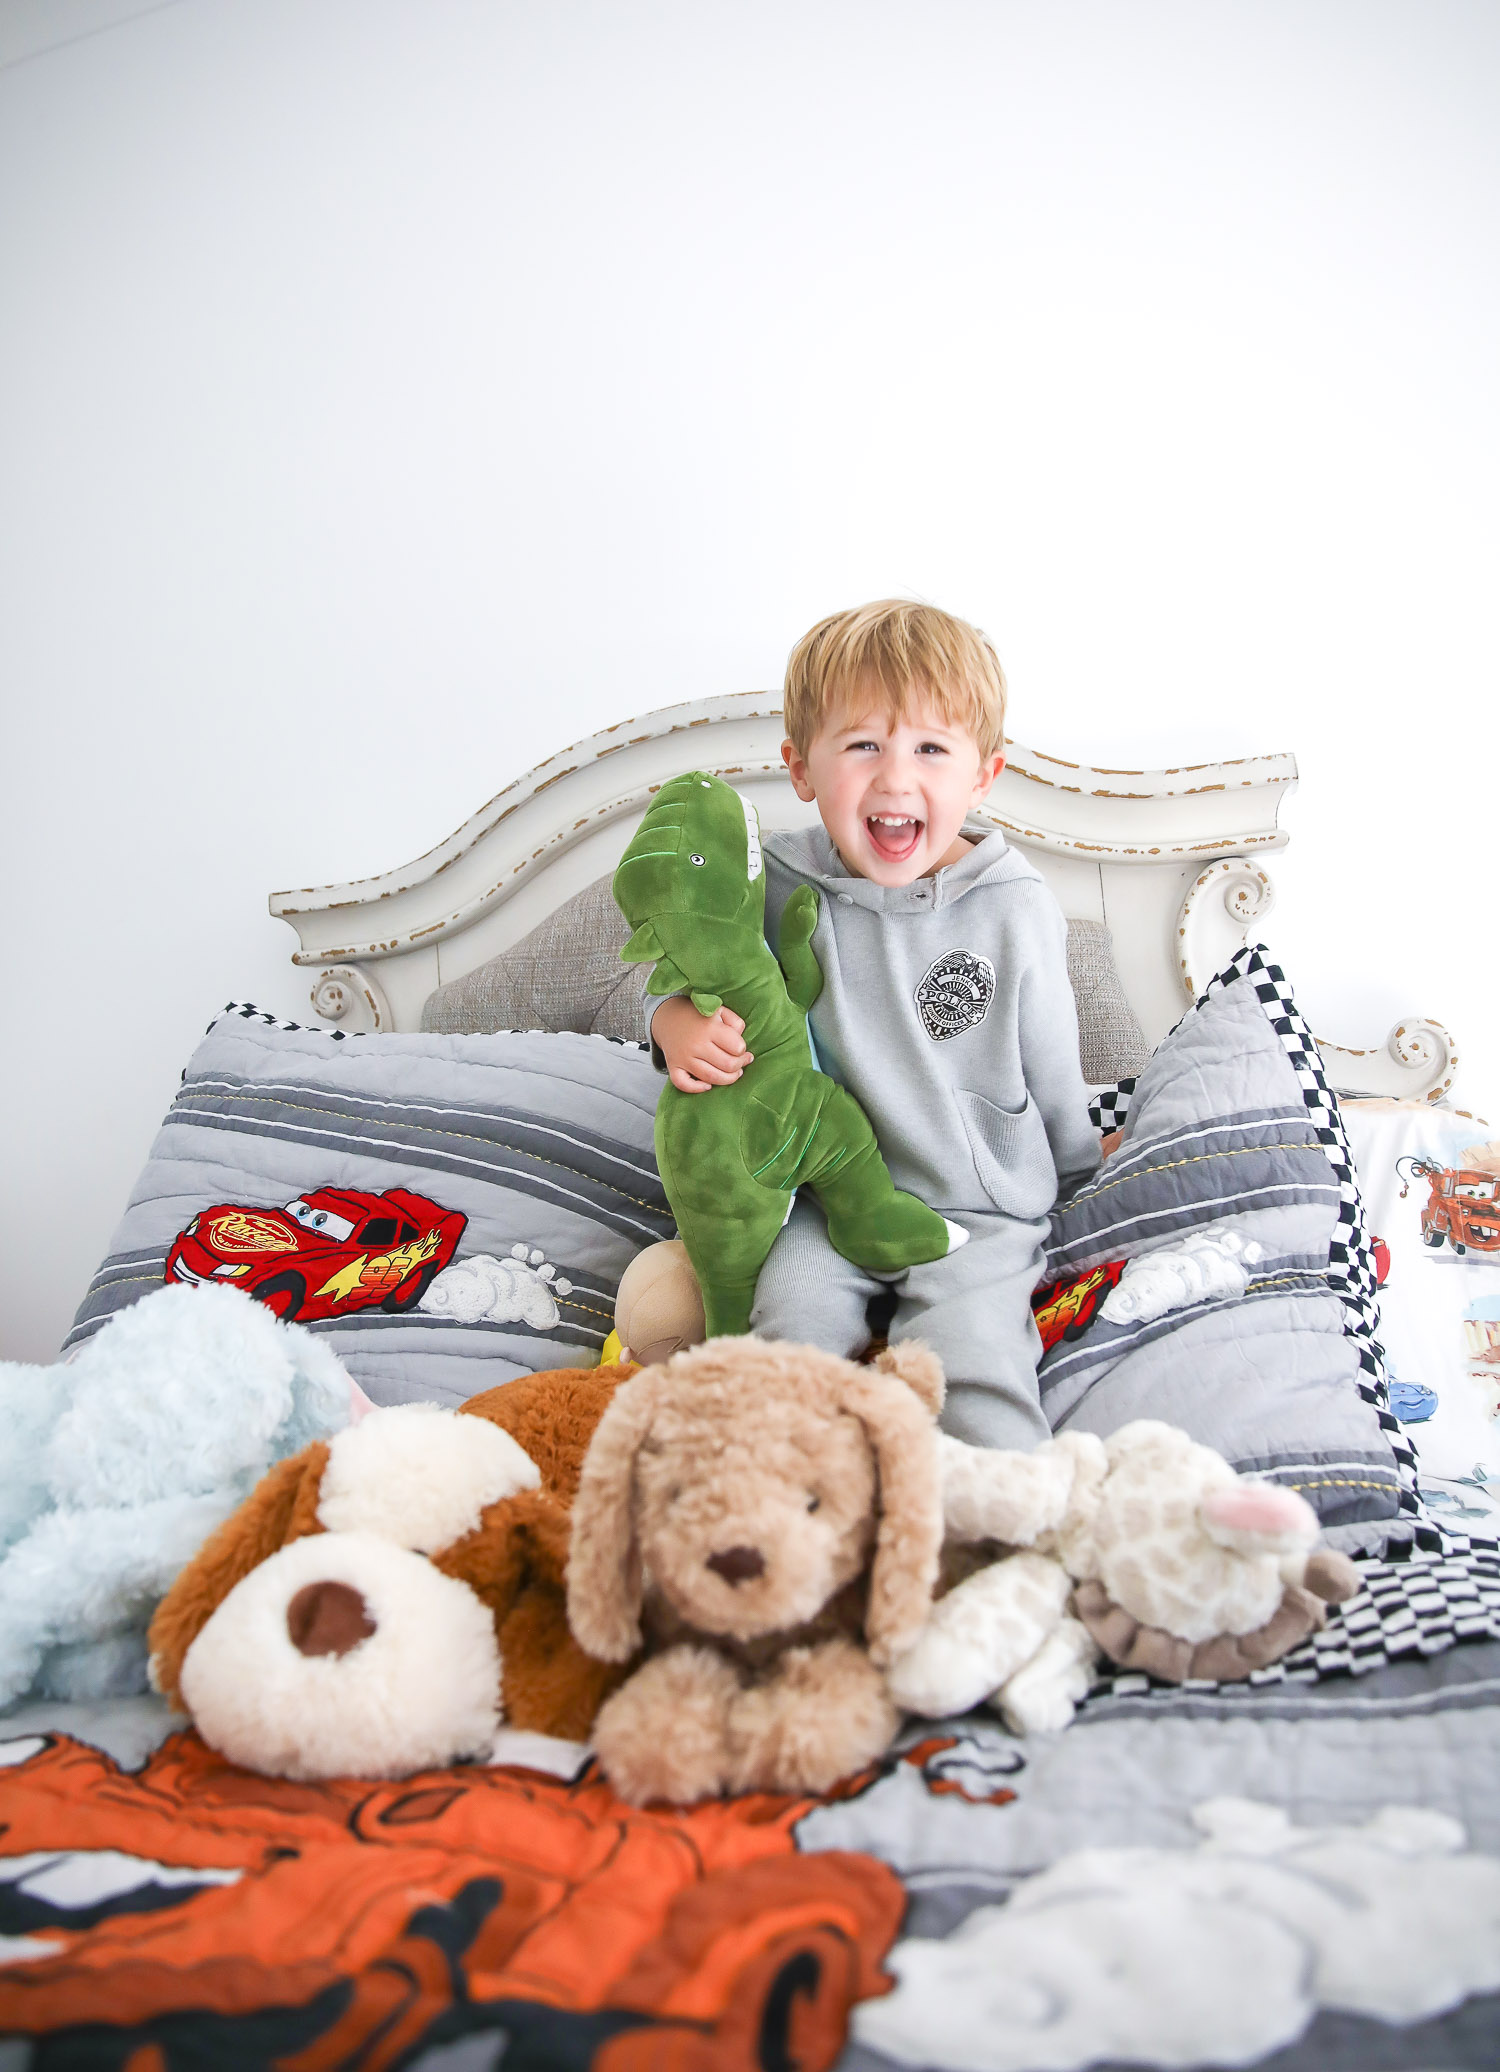 walmart kids home organization must haves, playroom organization ideas, emily gemma, the sweetest thing blog | Playroom Organization by popular US life and style blog, The Sweetest Thing: image of a little boy sitting on his bed with some stuffed animals.